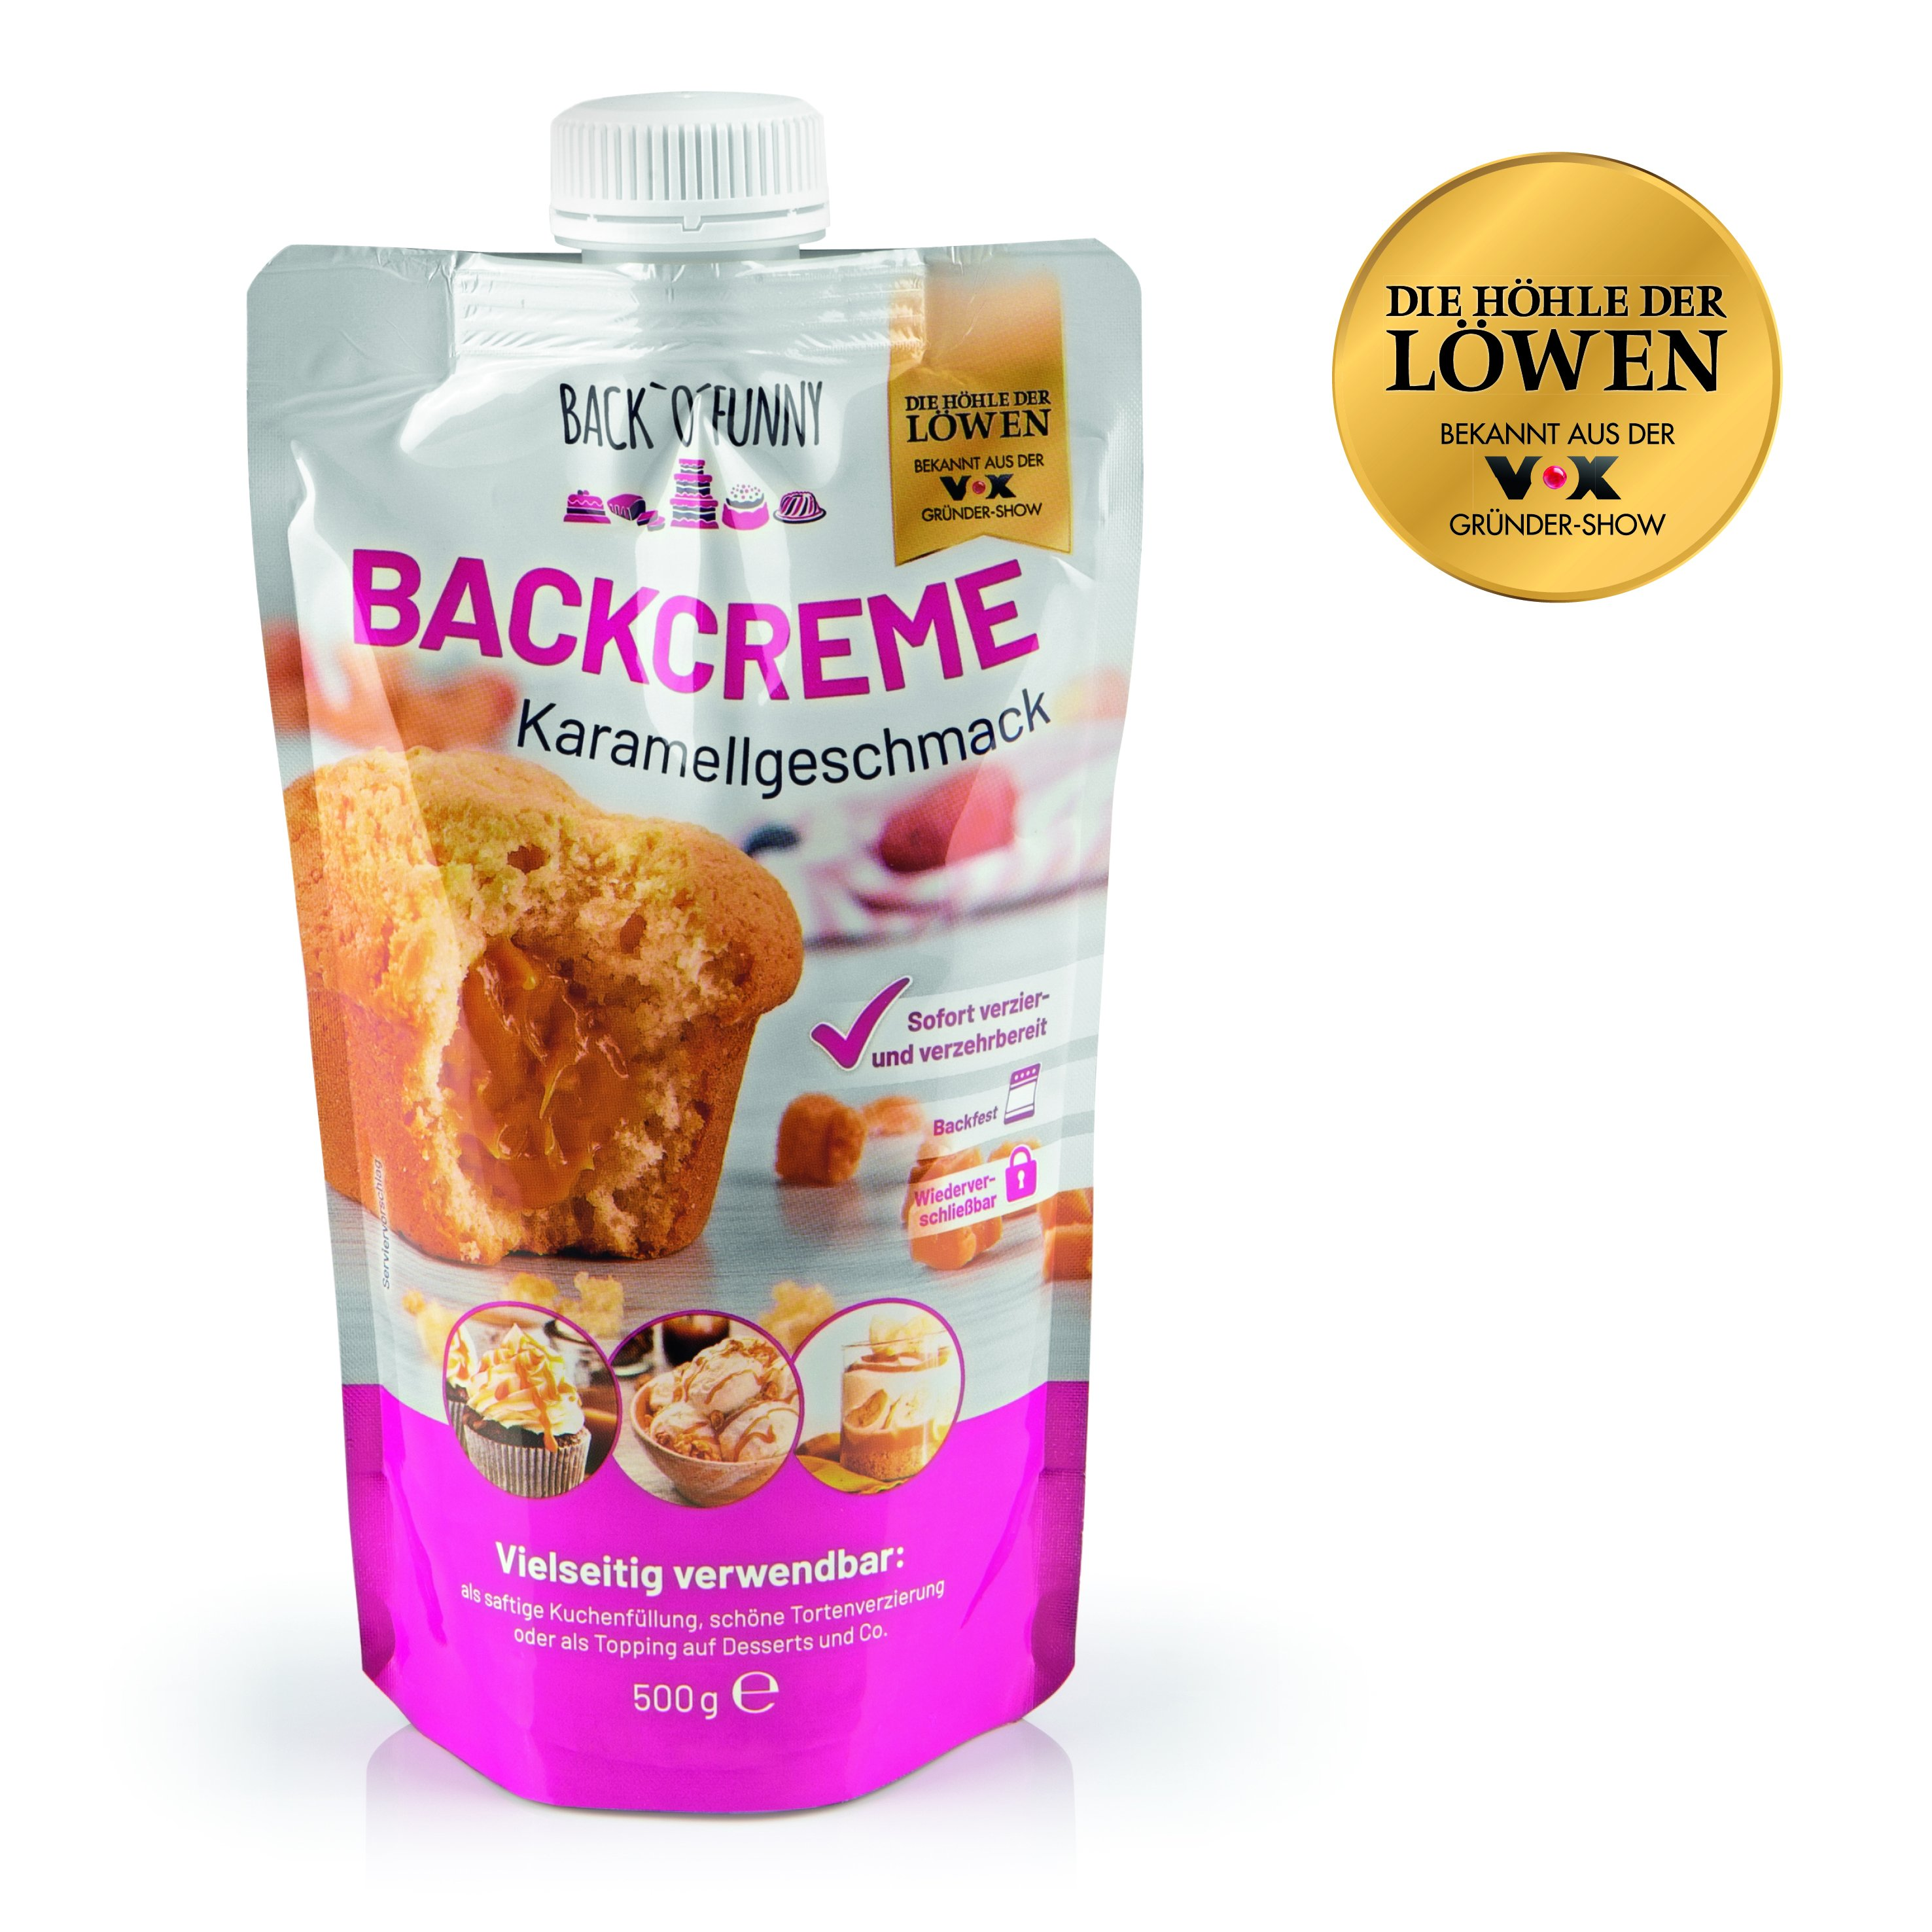 Back o Funny Backmischung Toffee 500g